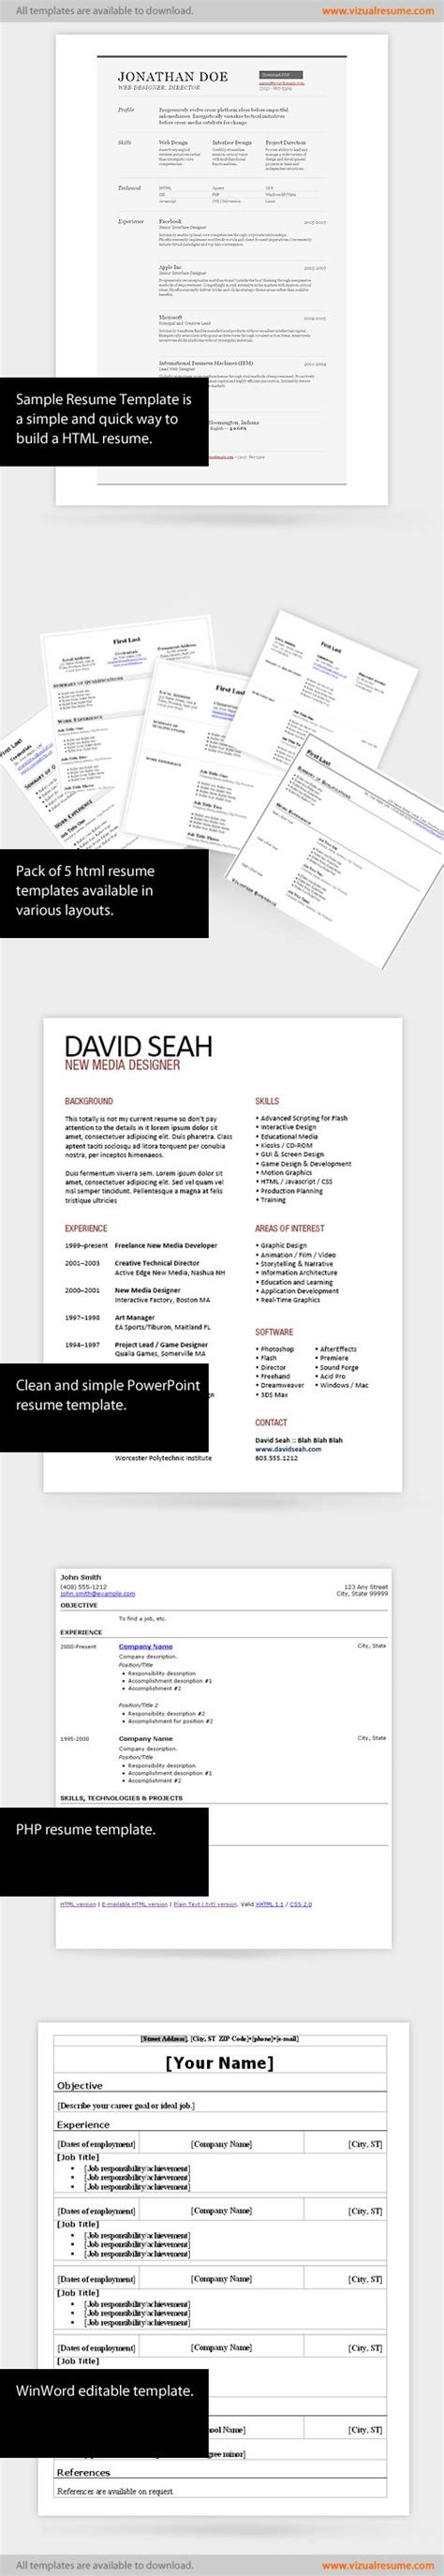 free visual resume templates 42 best ideas about worklife on creative